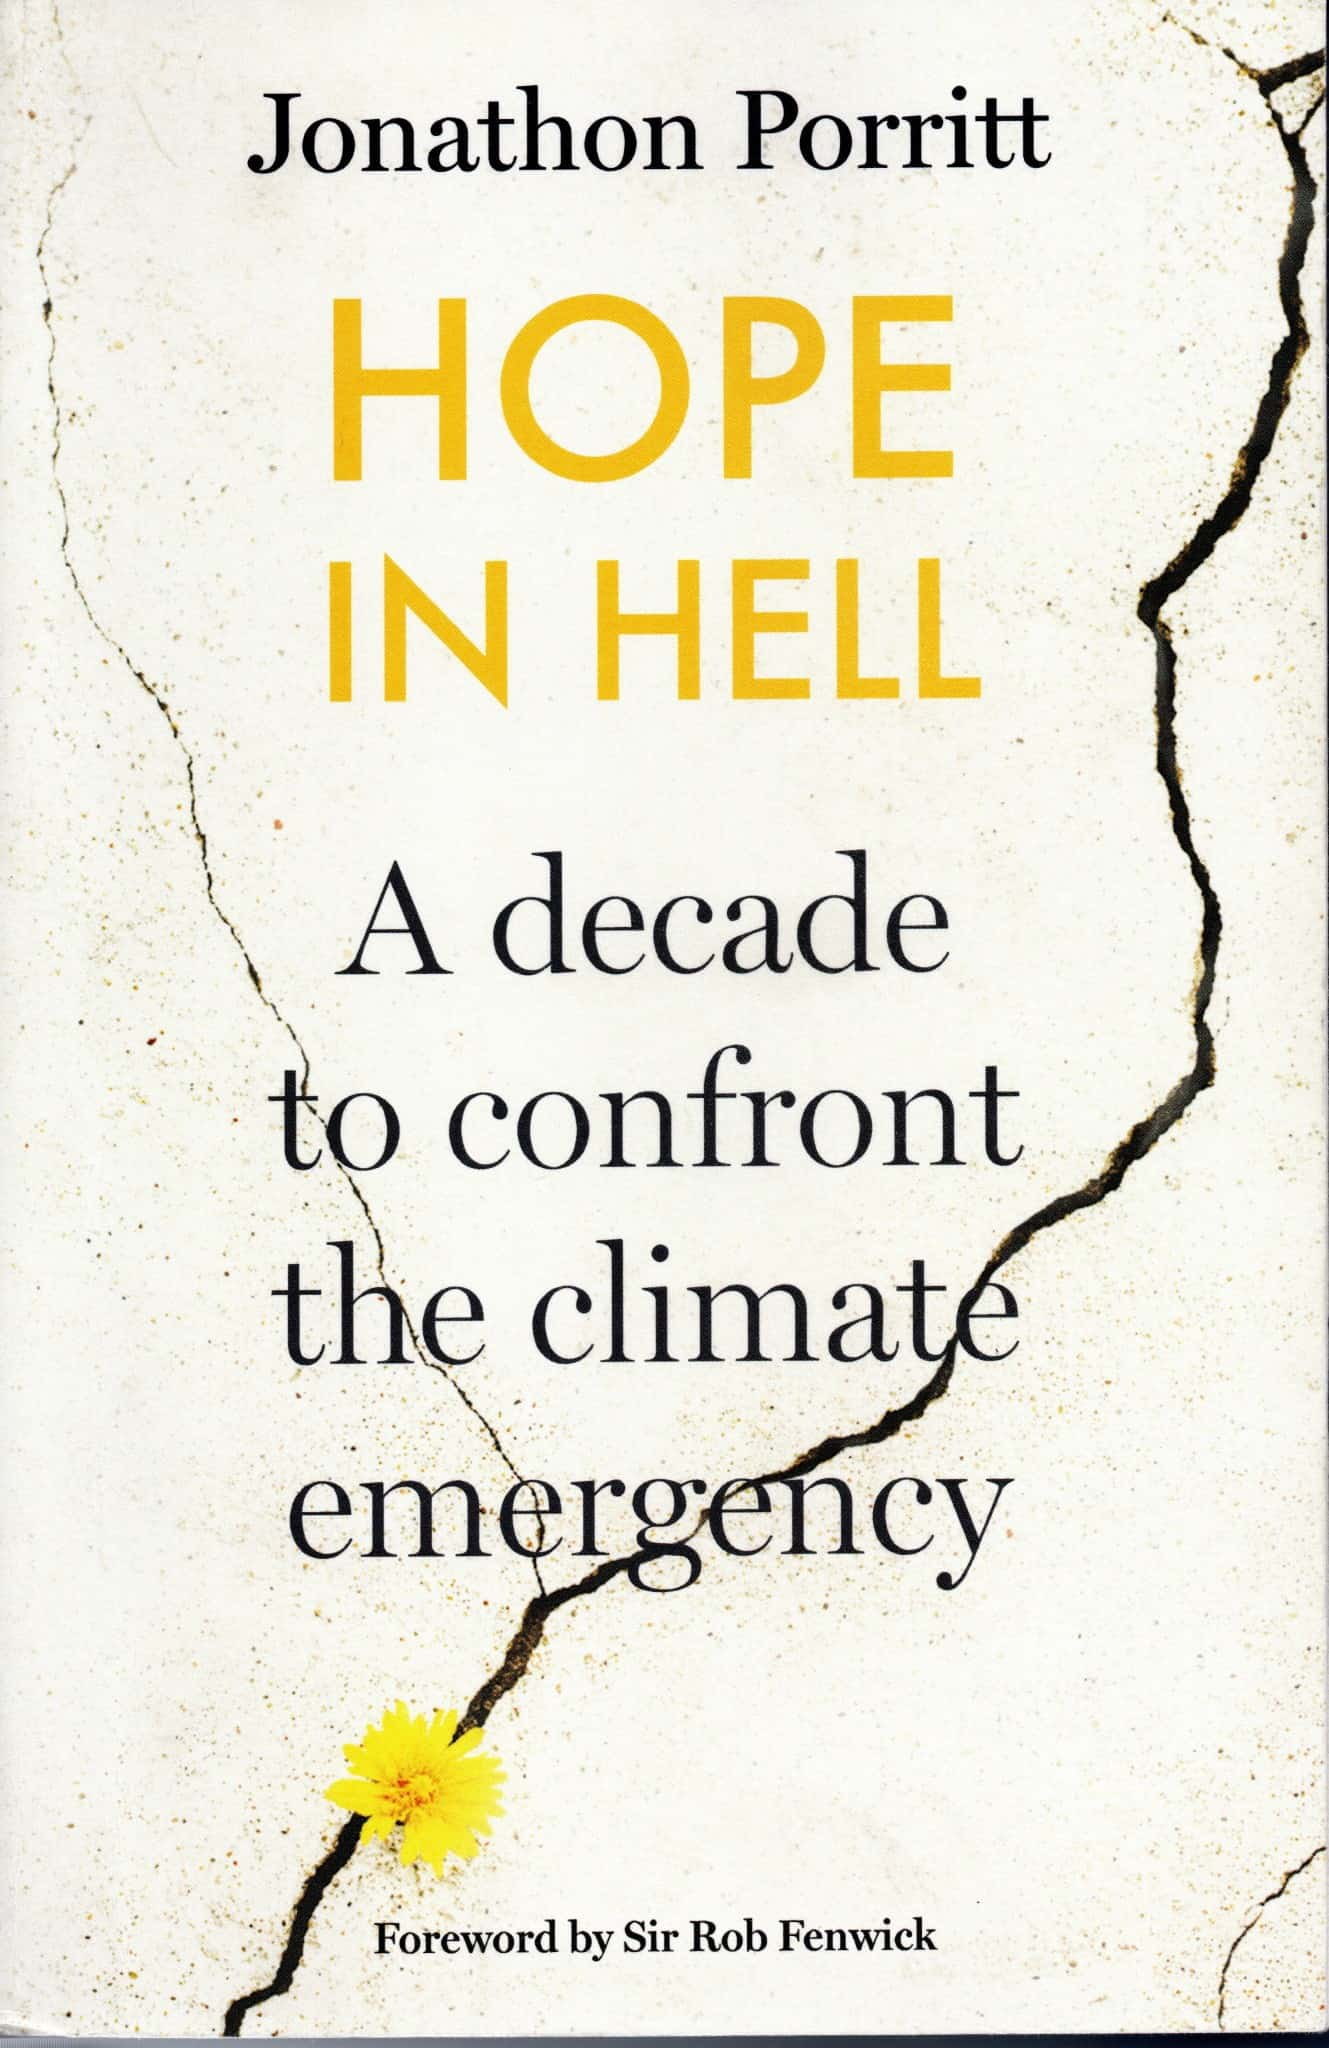 Book Review: Hope in Hell – A decade to confront the climate emergency